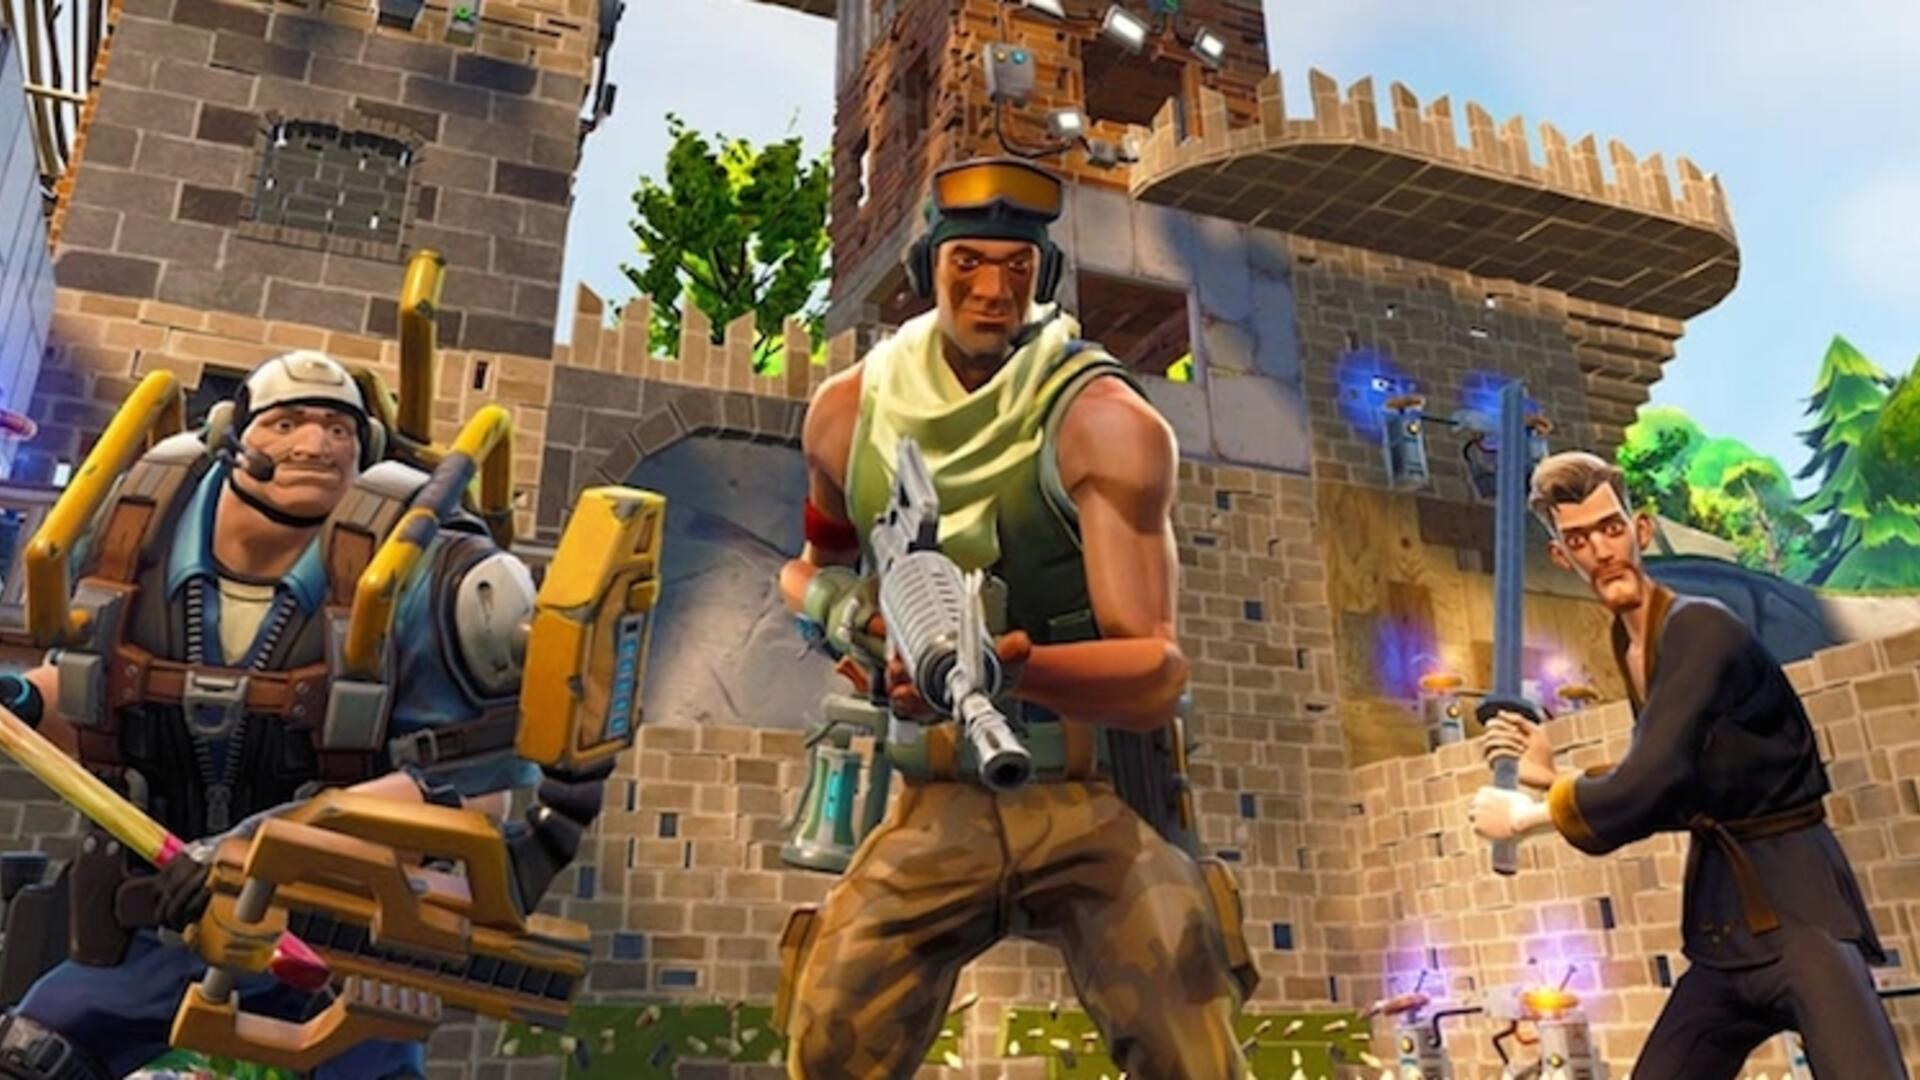 Fortnite's New In-Game Tournaments Don't Separate Keyboard and Mouse, Controller, and Touch Players